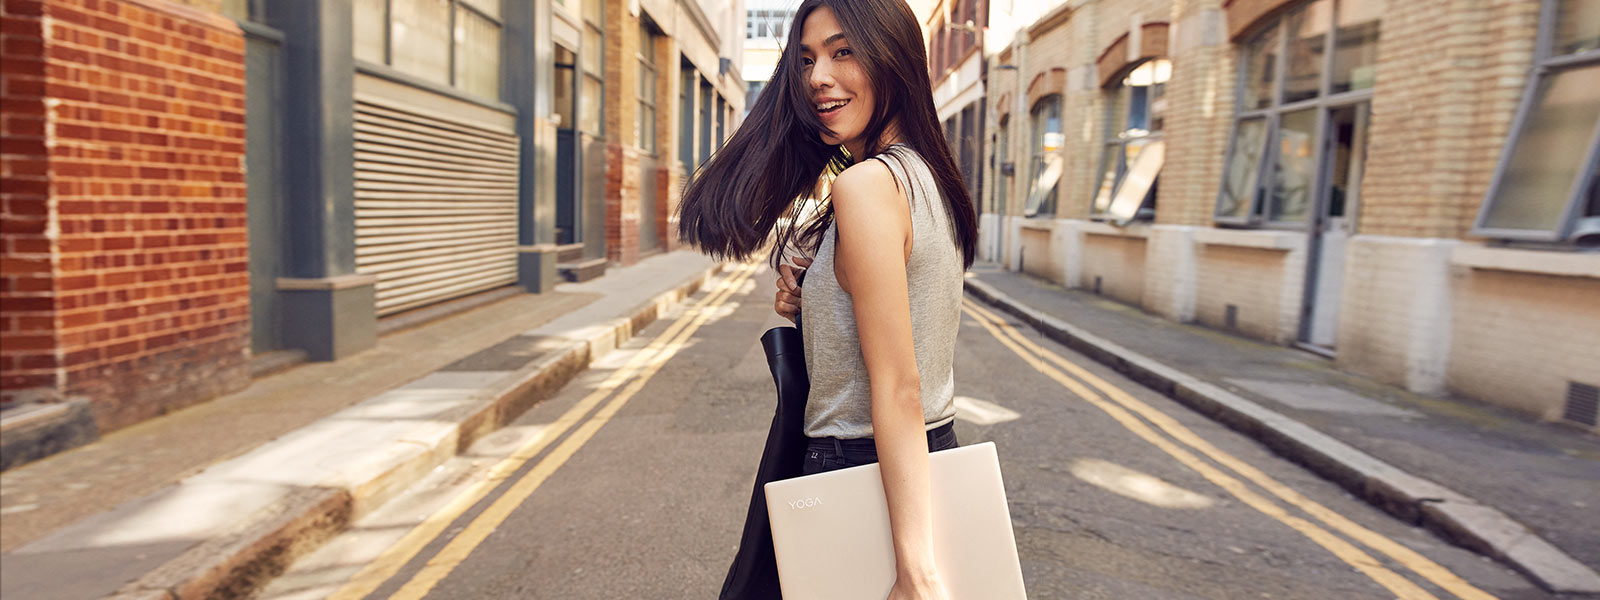 Woman walking down street with Lenovo YOGA 910